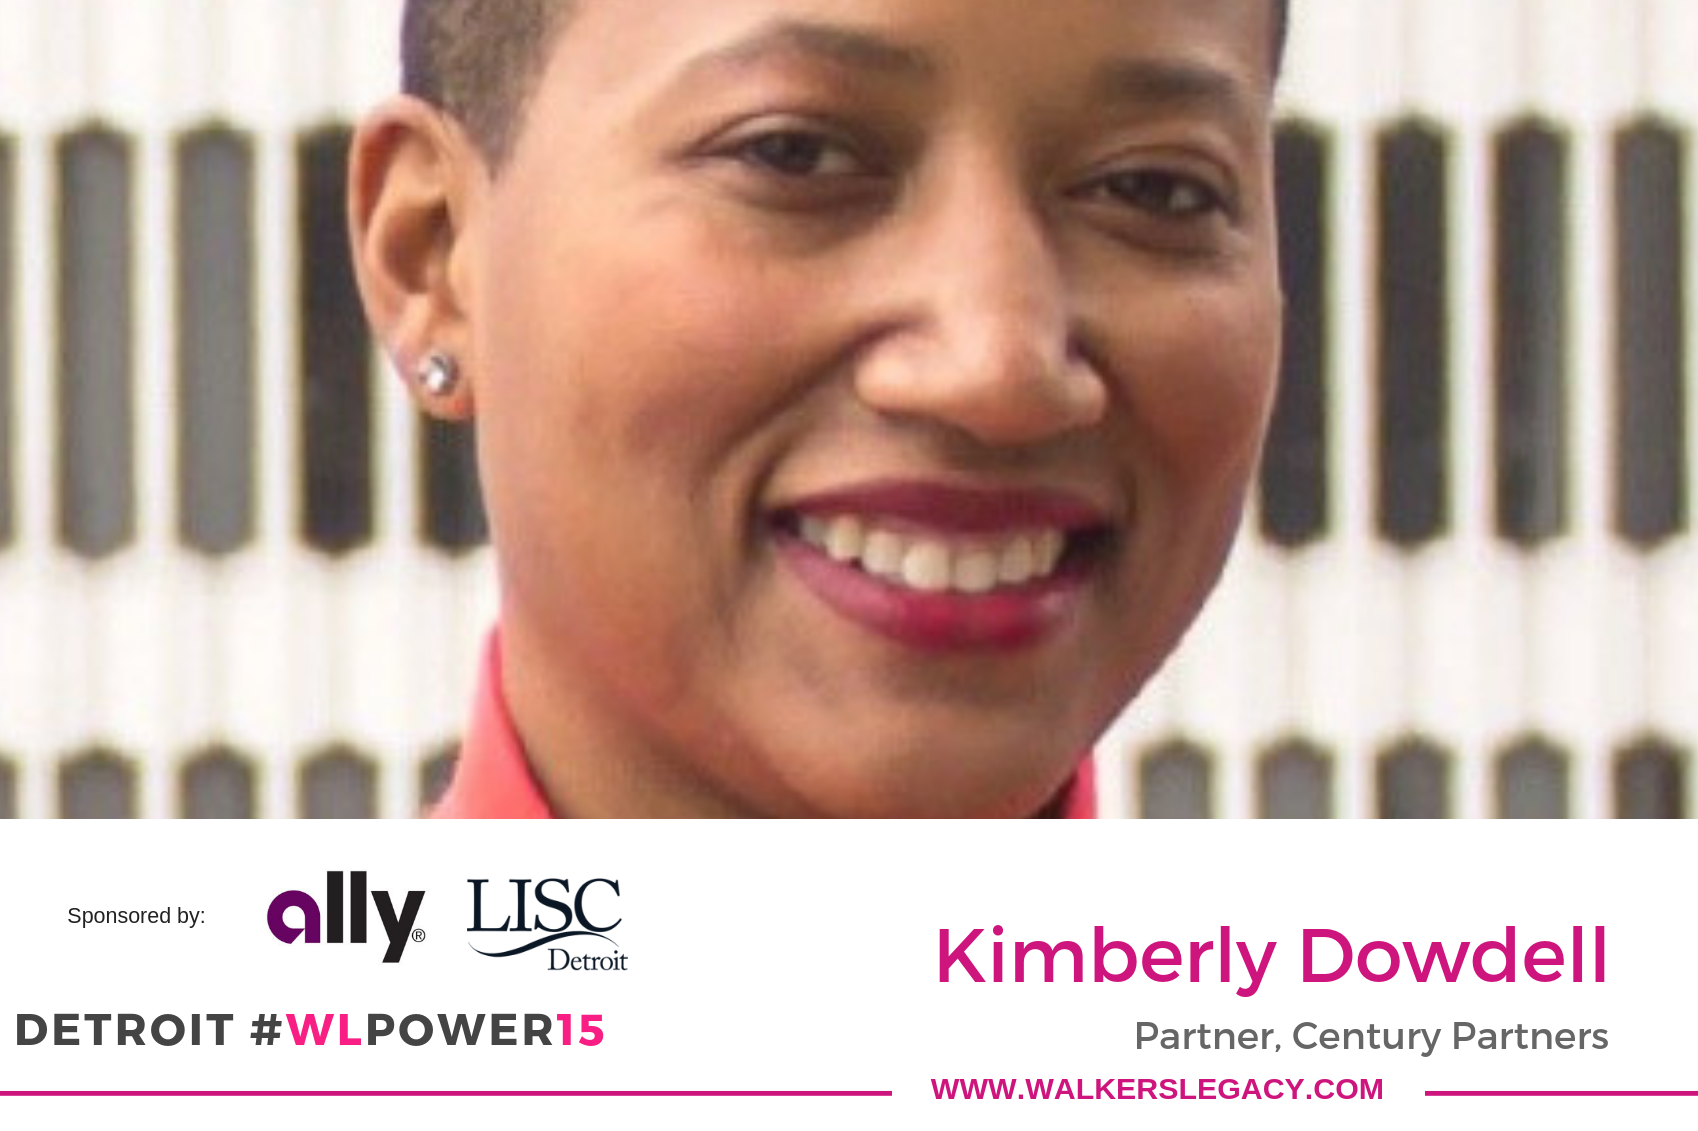 Kimberly Dowdell